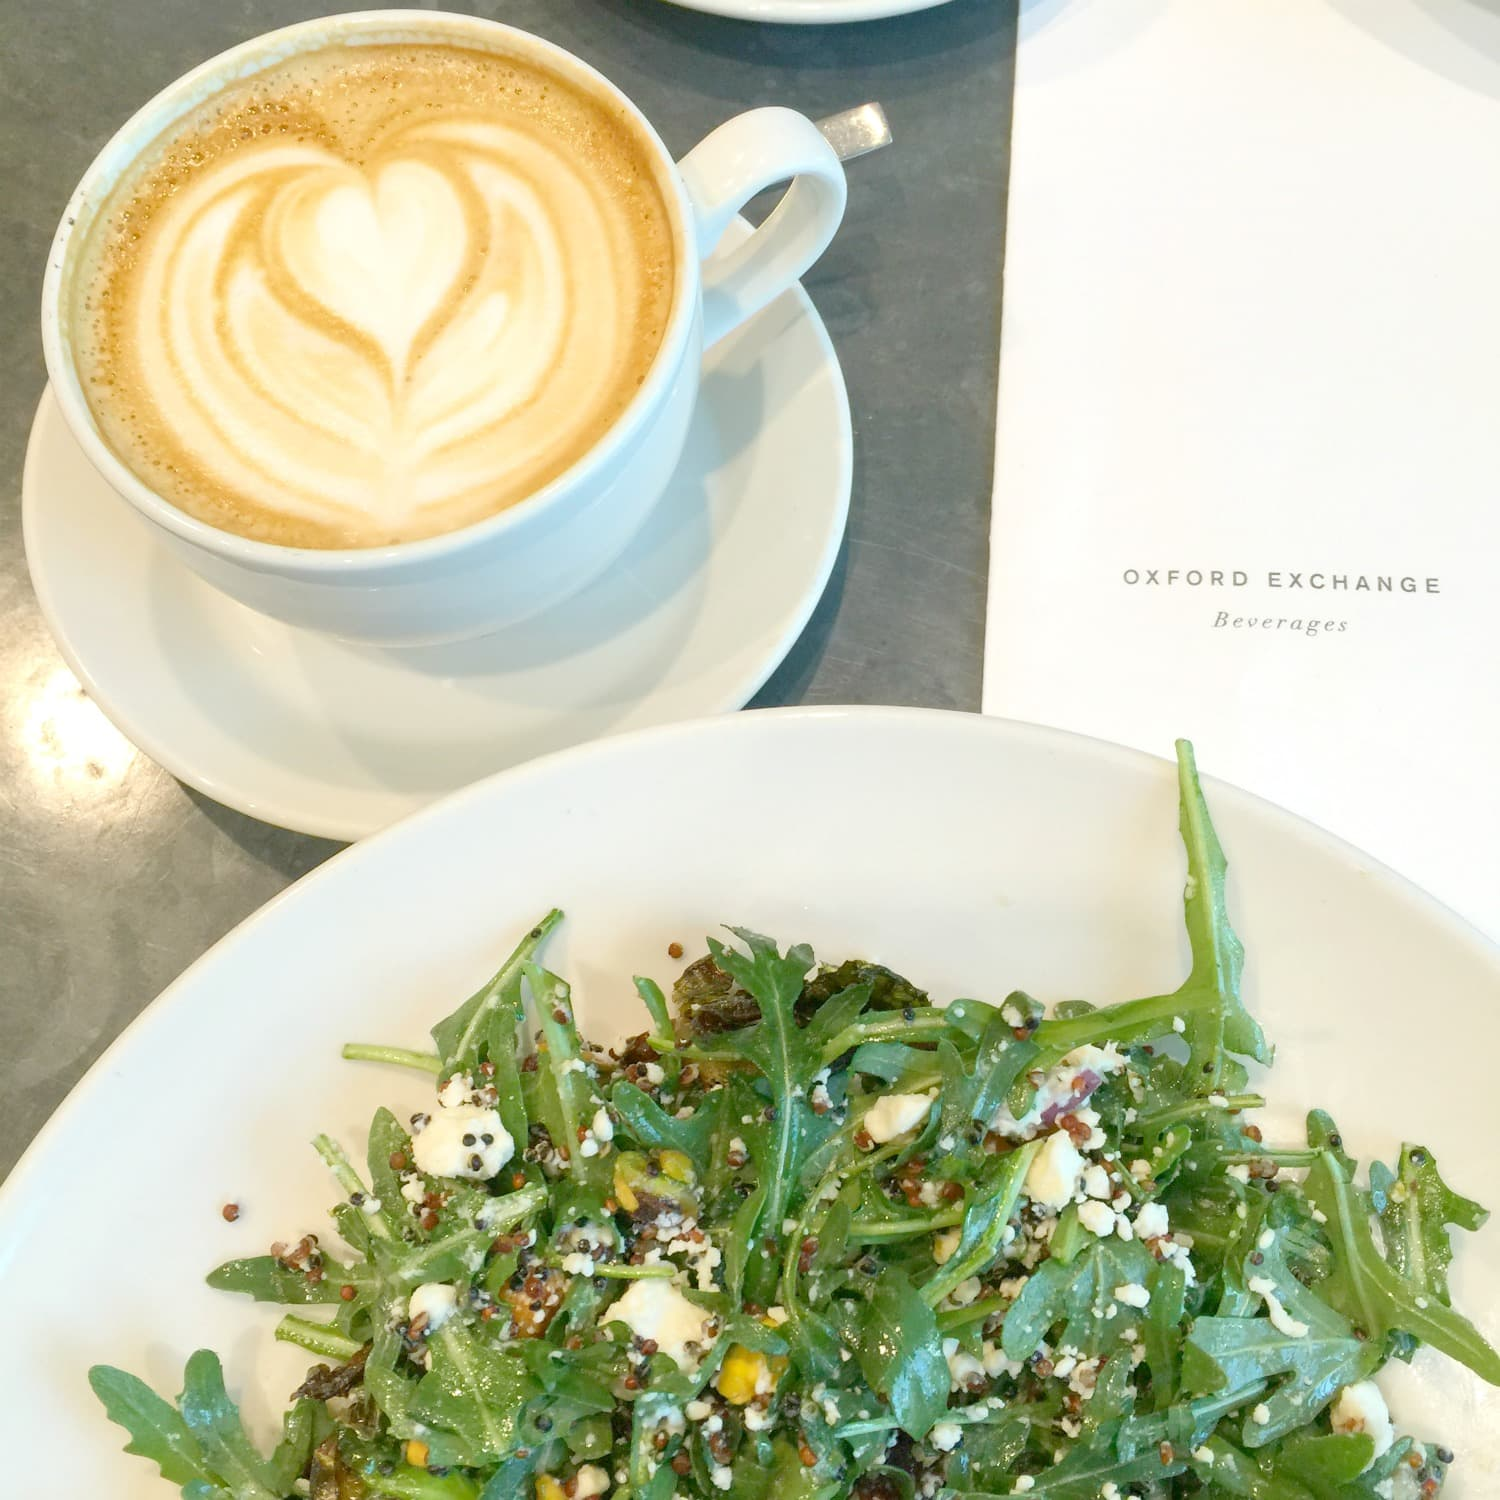 Latte Art and Kale Salad at Oxford Exchange | Tampa Florida Travel Guide | Marry Me on A Megabus Giveaway | Affordable Travel Options | Florida Travel Blogger Ashley Brooke Nicholas |